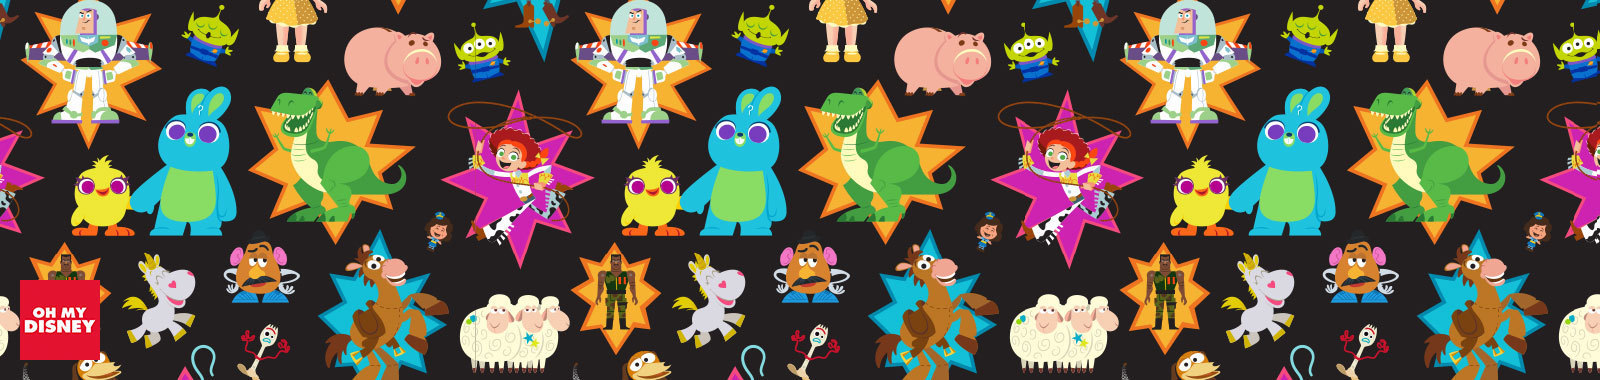 Go To Infinity And Beyond With These Disney And Pixar Toy Story 4 Mobile Wallpapers Disney Singapore